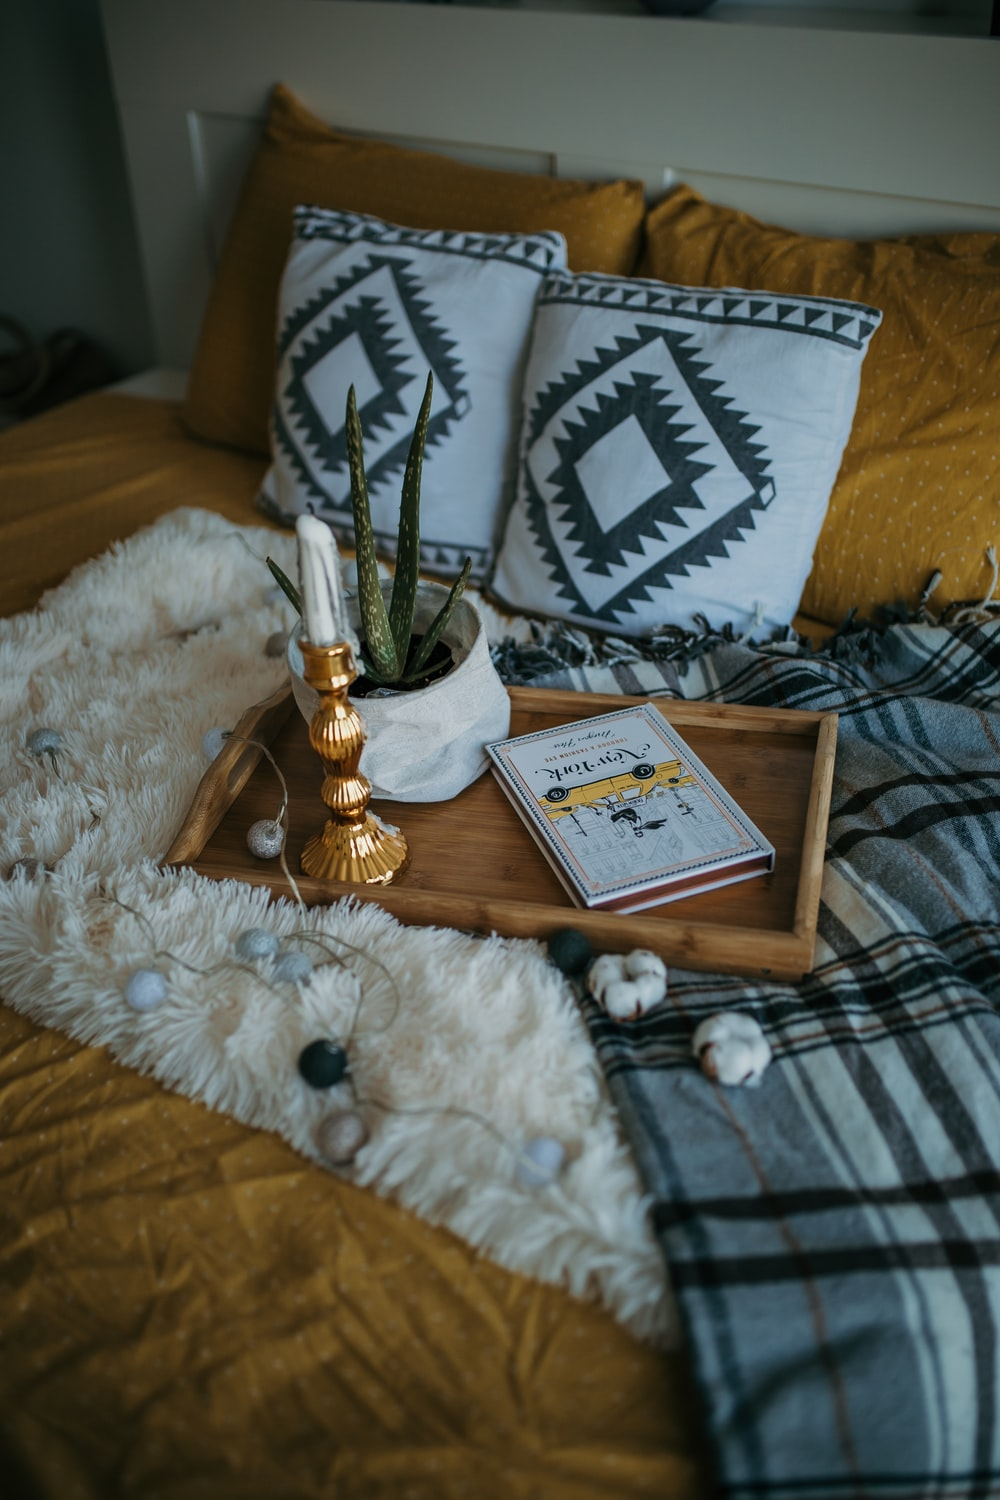 taper candle, book, and potted plant on a tray placed on top of bed